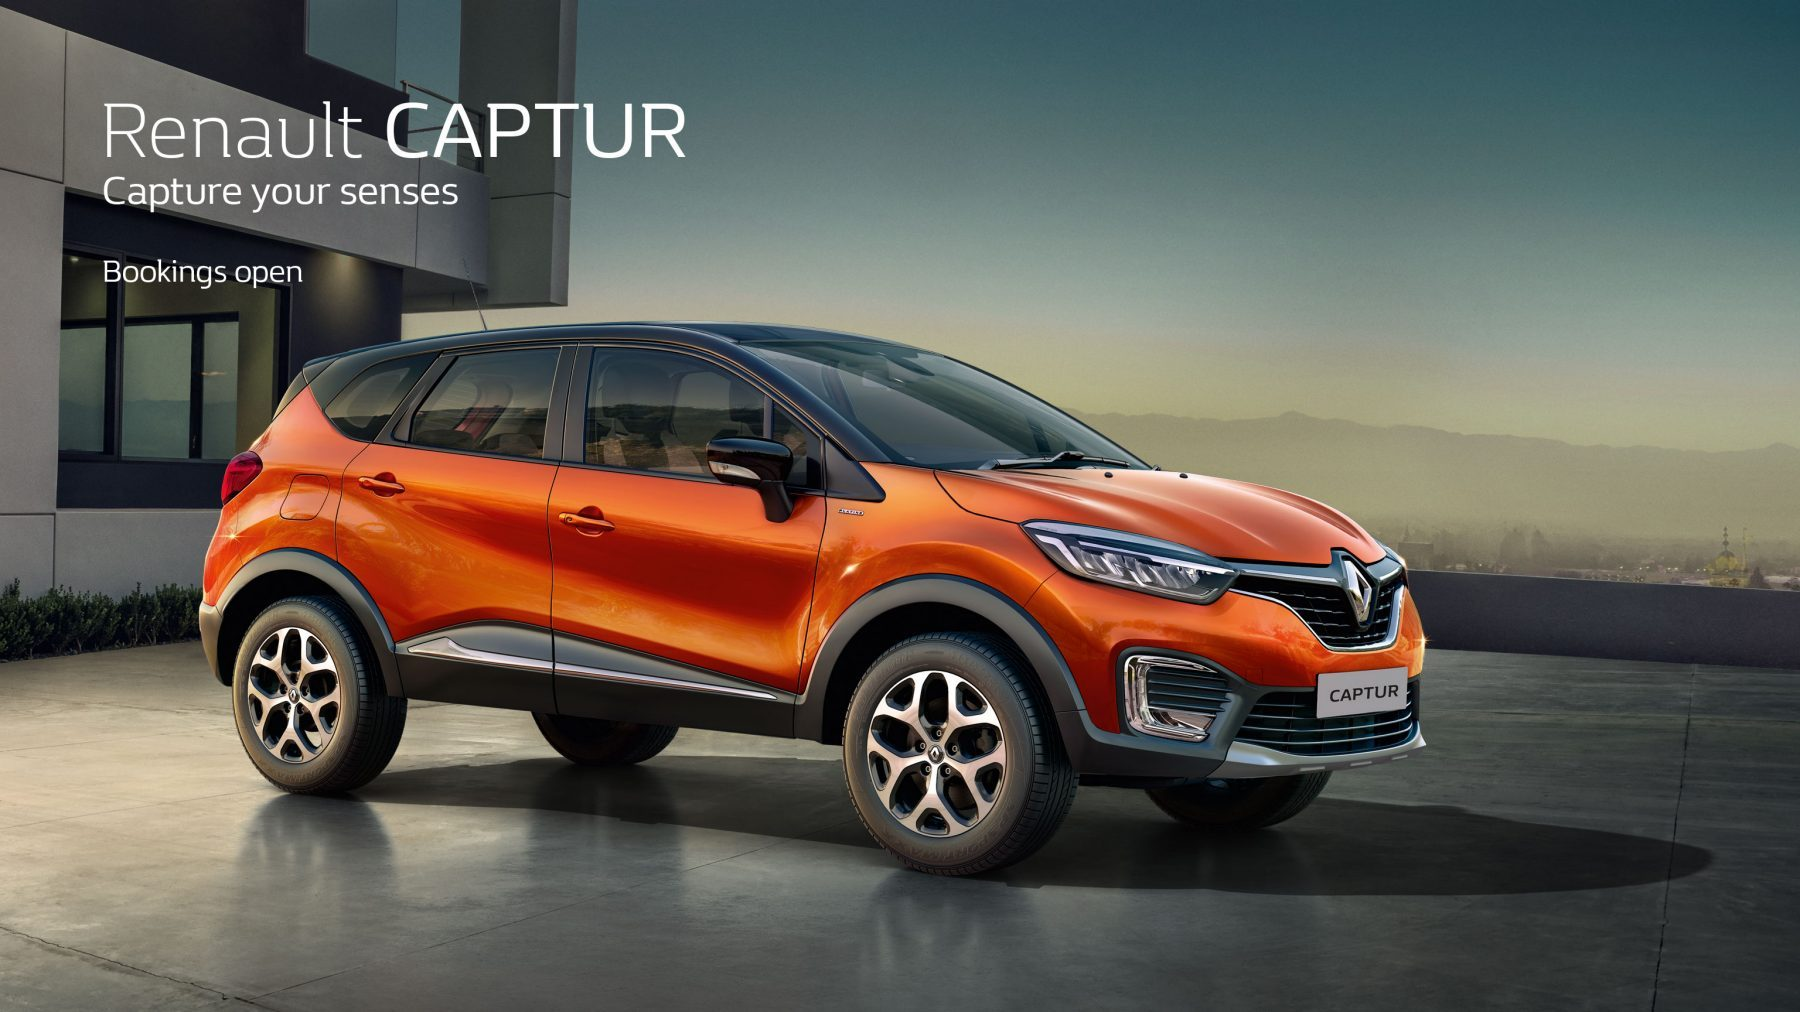 2017 renault captur launched in india specifications price variants imagesauto news. Black Bedroom Furniture Sets. Home Design Ideas